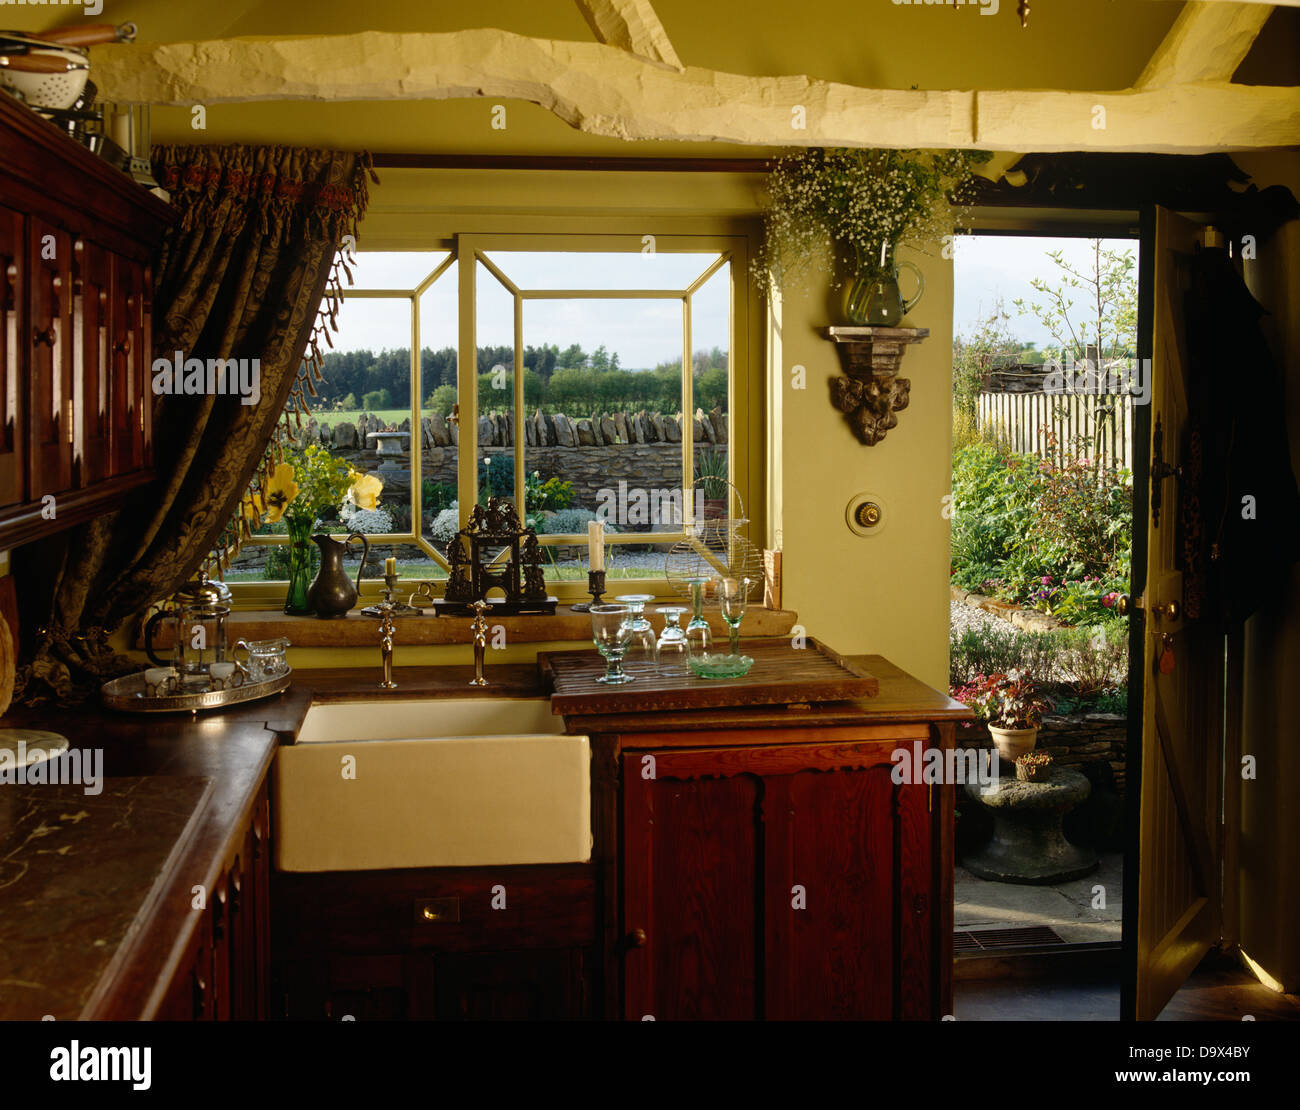 Old Country Kitchen: Old Fashioned Belfast Sink Beneath Window In Country Style